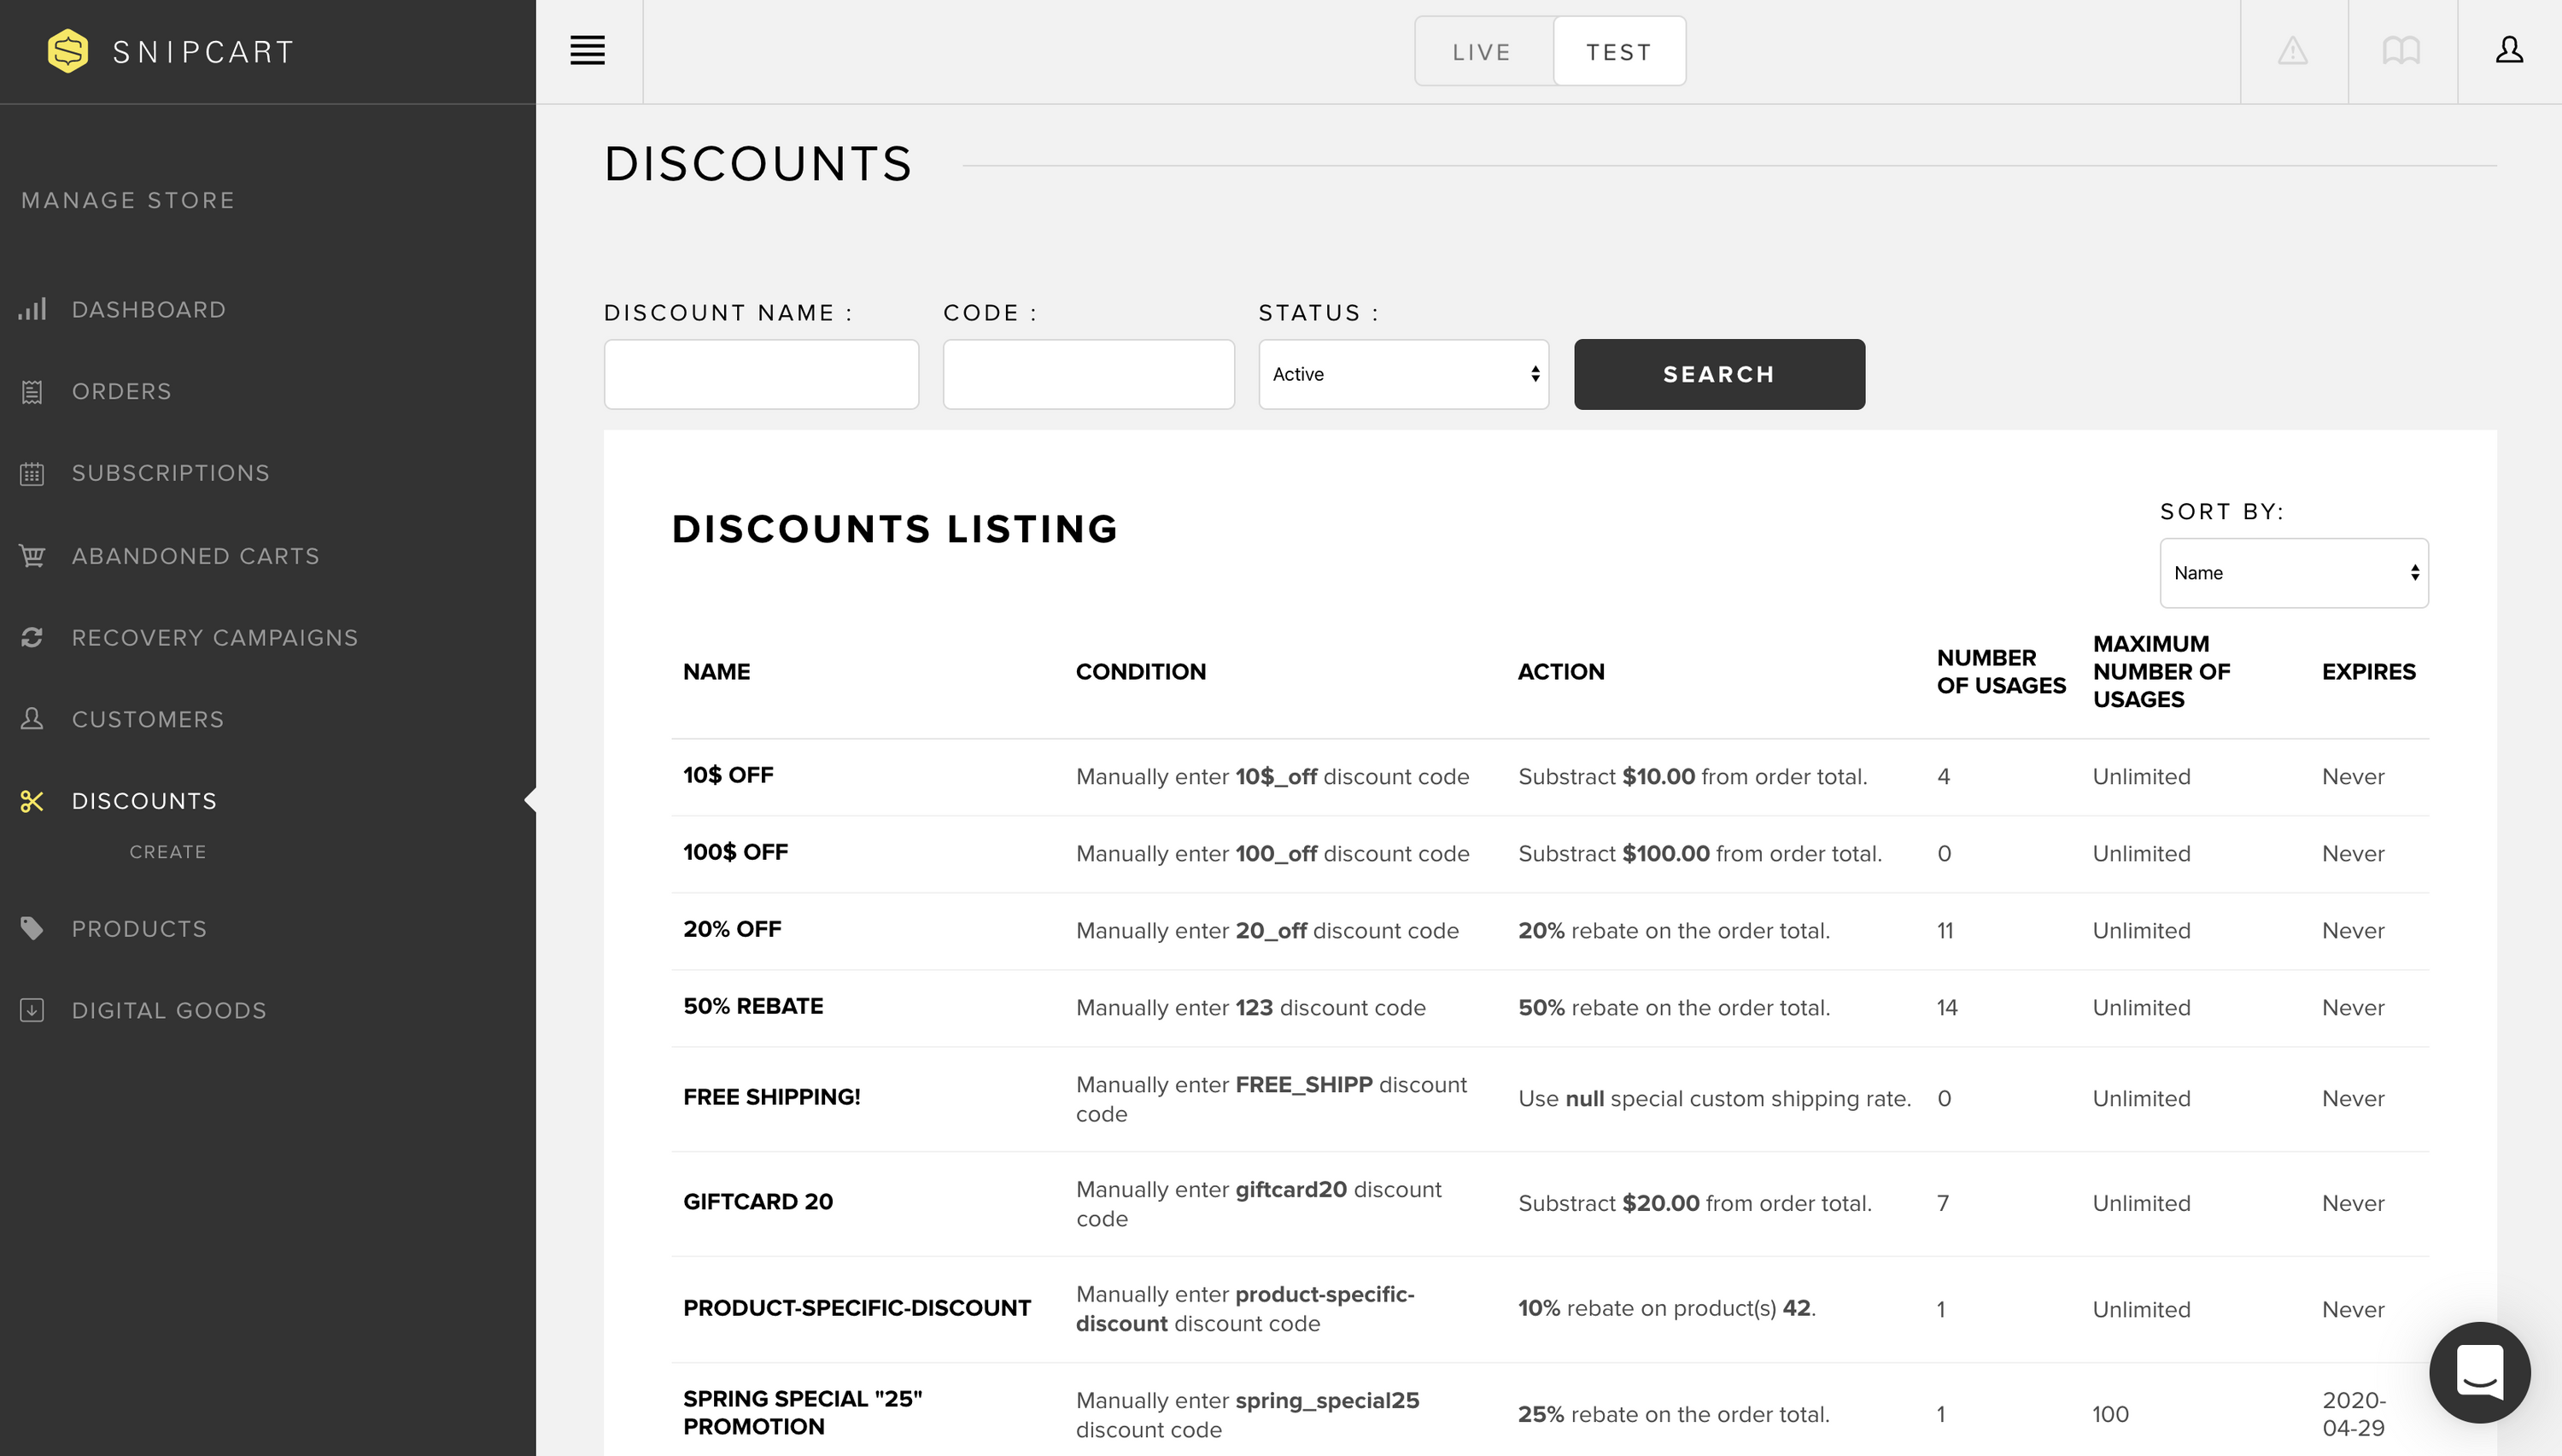 Discounts list in Snipcart dashboard